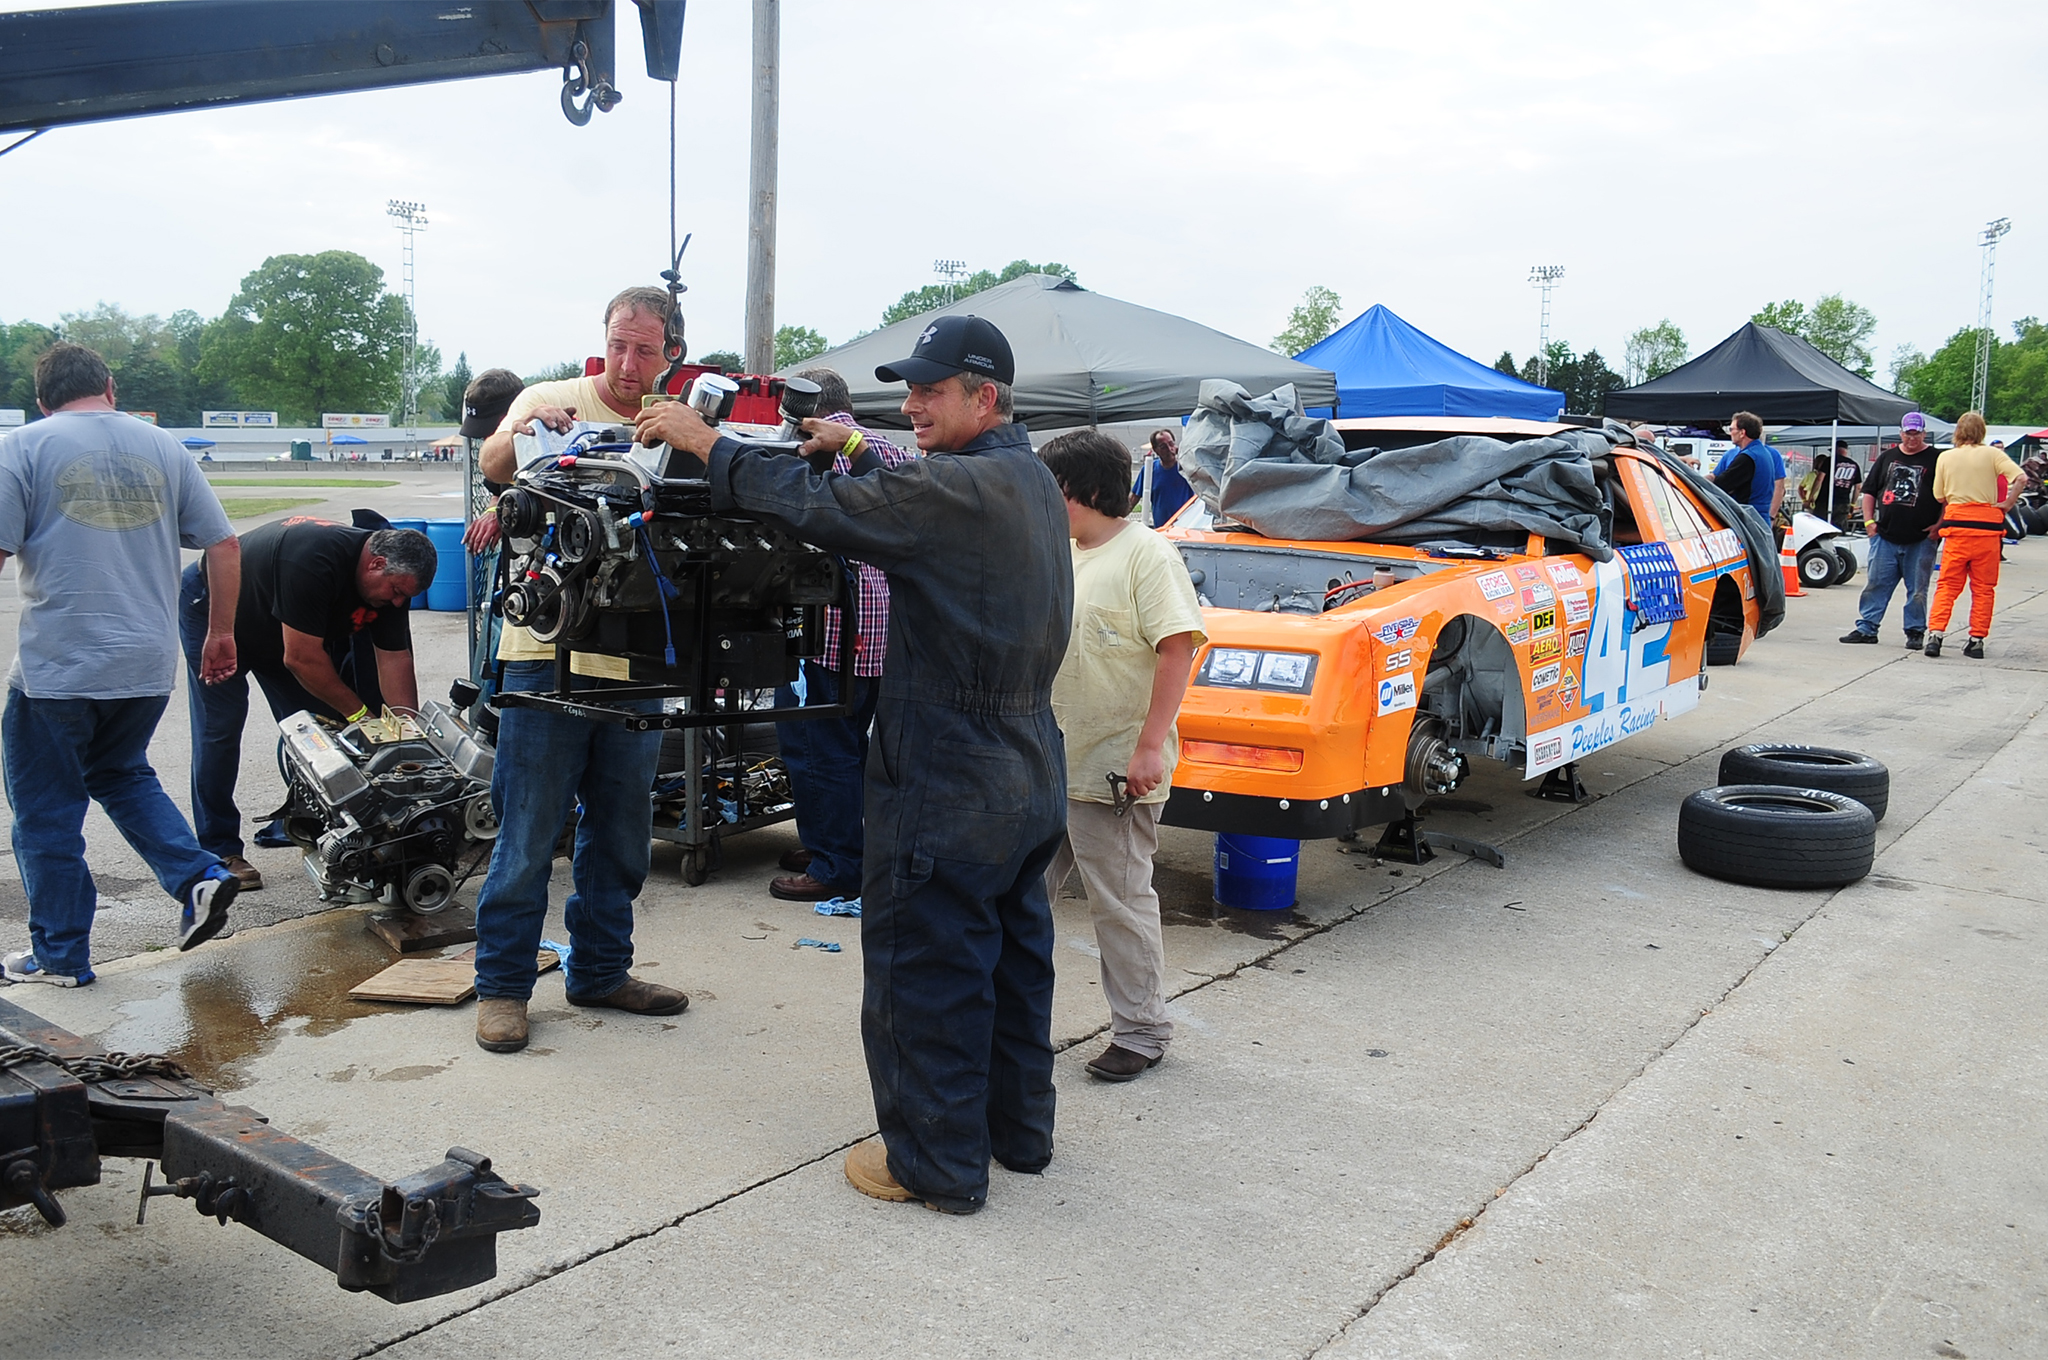 The story of the race had to be South Carolina's Curtis Peeples smoking a motor in practice, borrowing one from Salem's tech guy and having his crew swap engines during the afternoon, as you see here. He missed all of qualifying and the heat races but made the feature where he started dead last. He put on quite a show coming all the way through the field to lead for a time, before ultimately finishing Sixth.